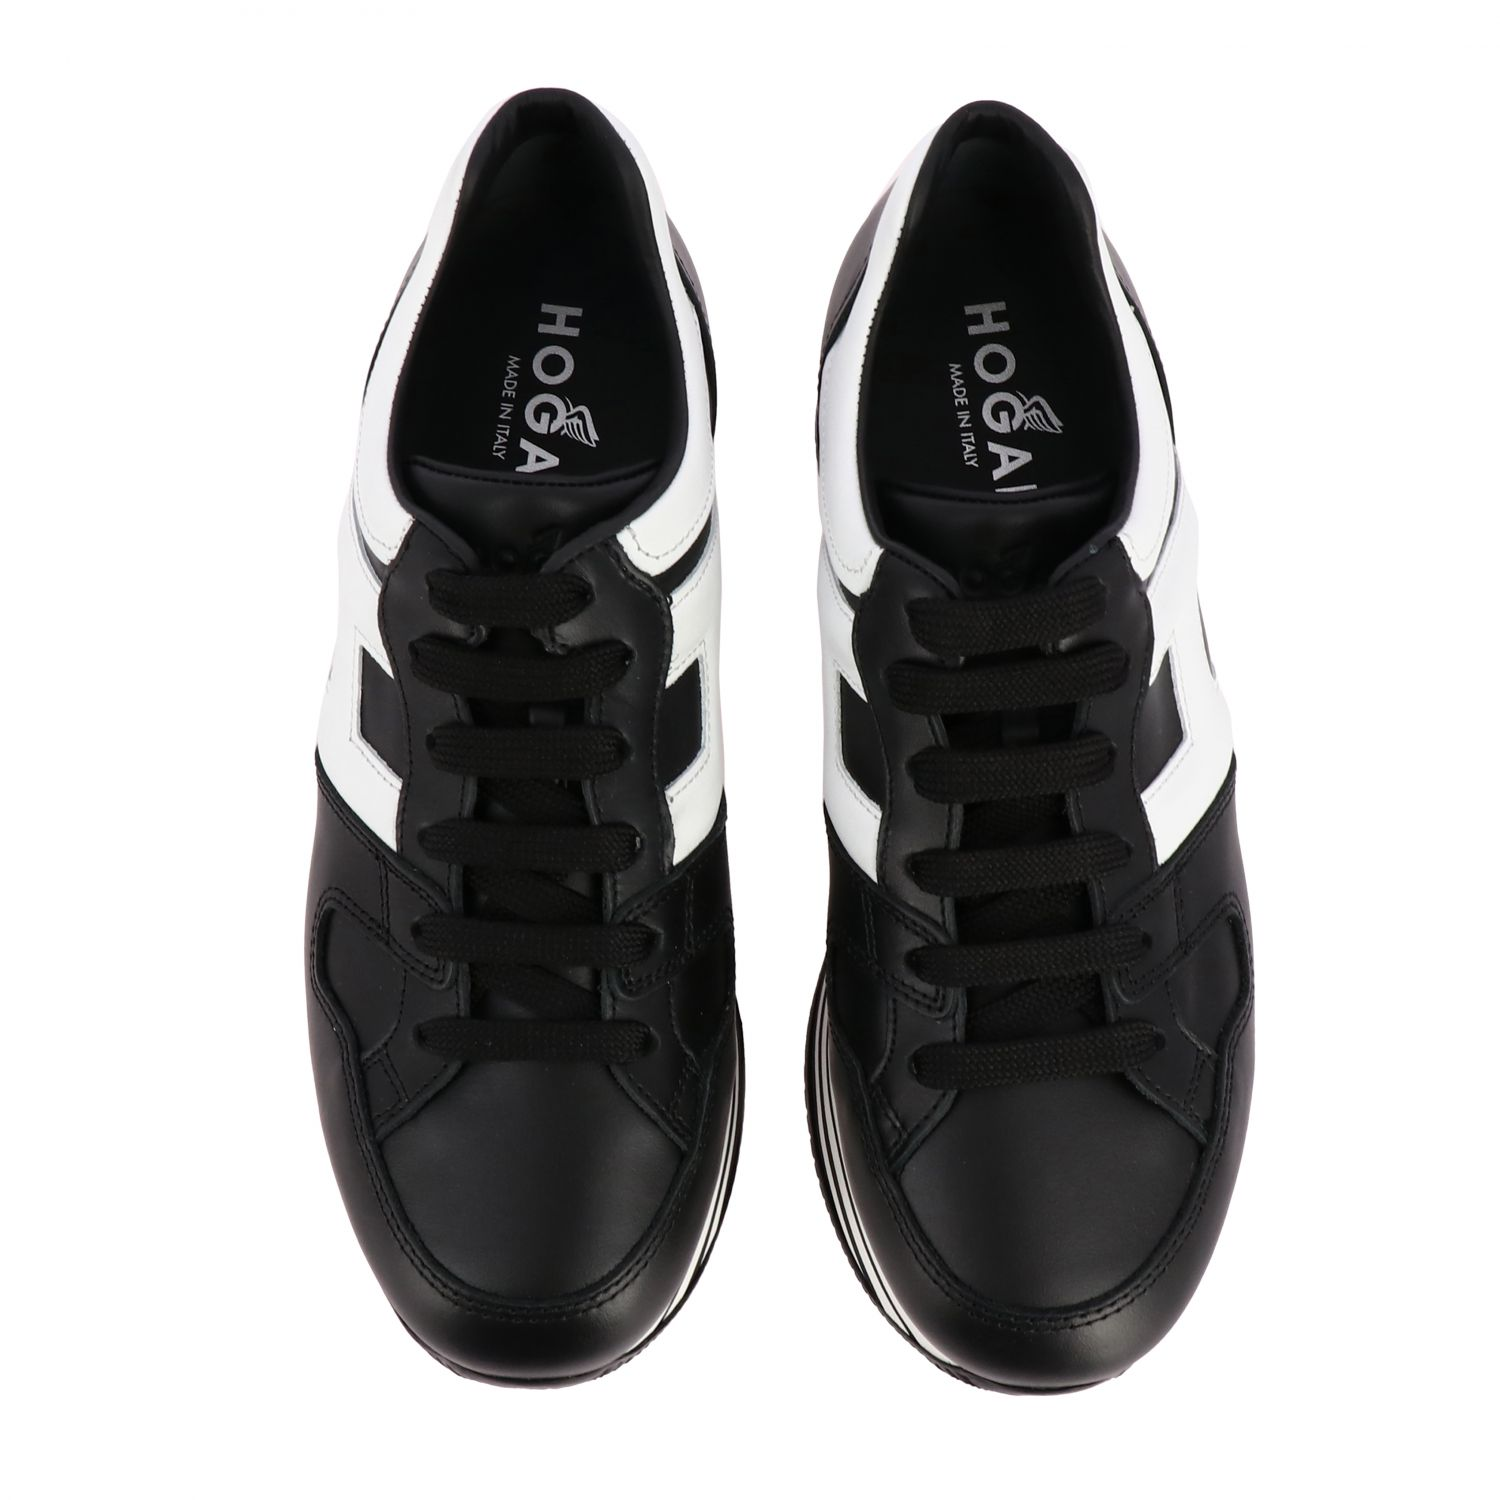 Hogan 283 leather sneakers with big H and maxi 222 platform sole